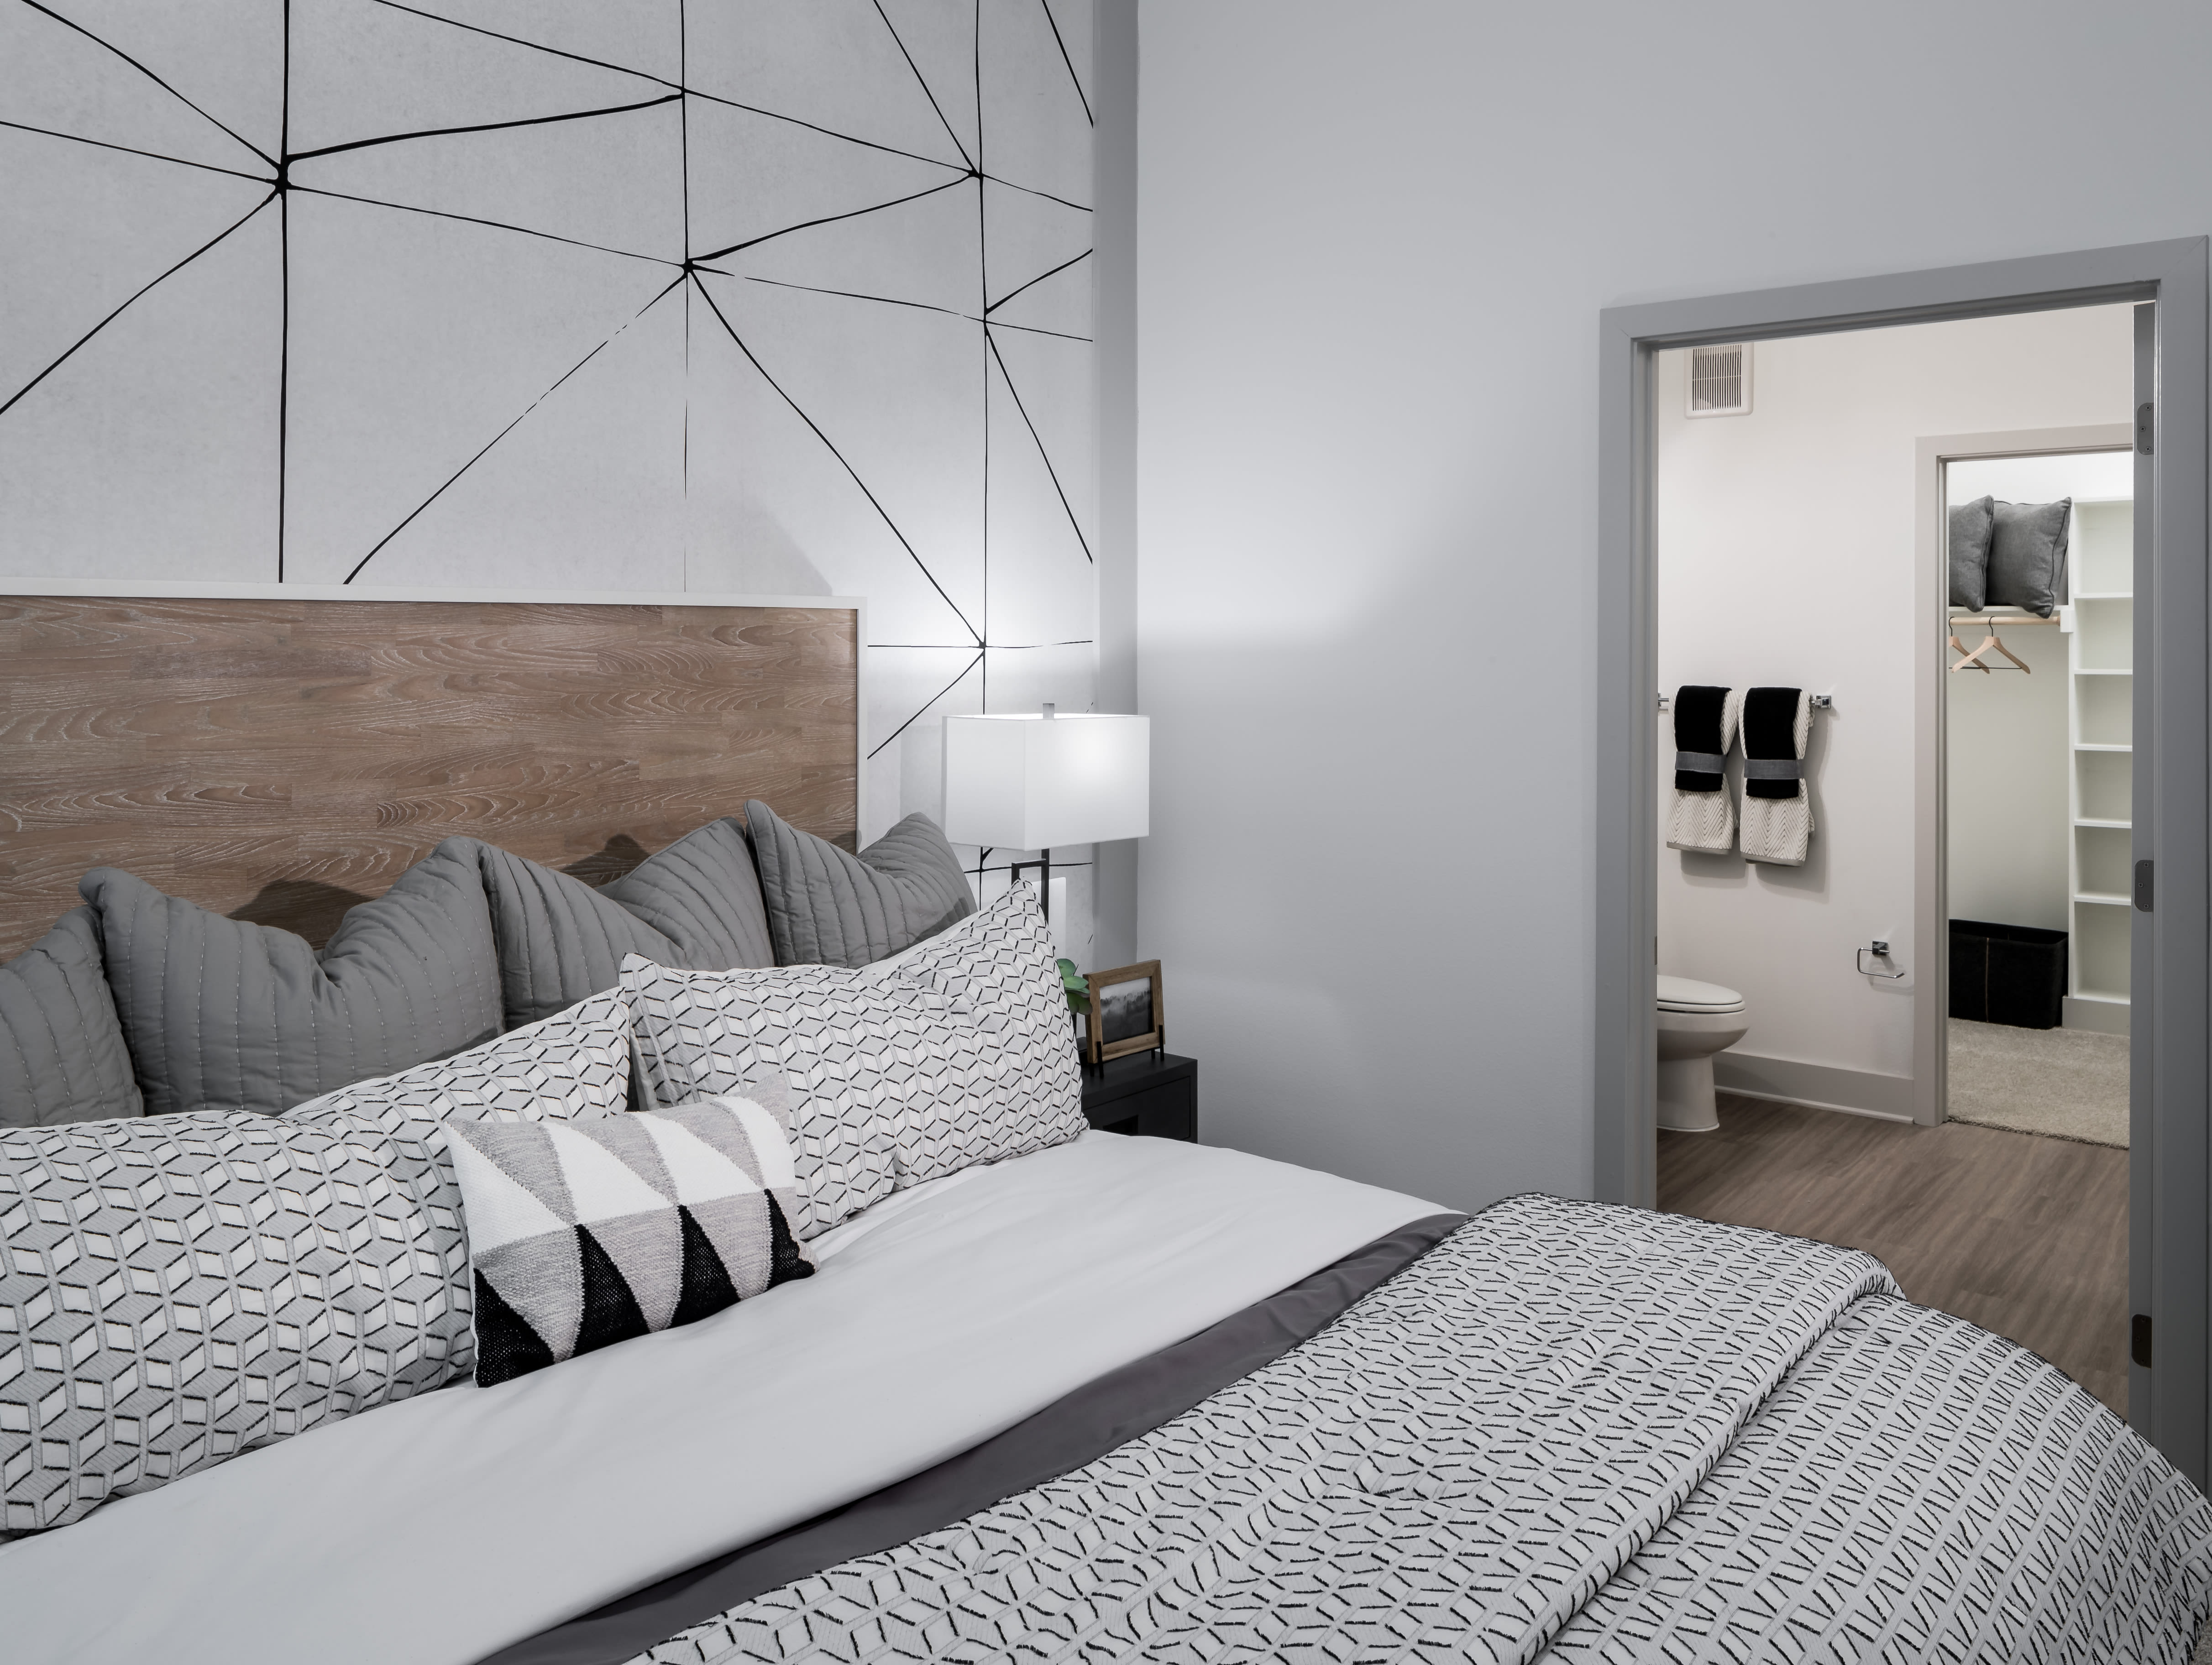 Spacious bedroom layout at The ReVe in Garland, Texas